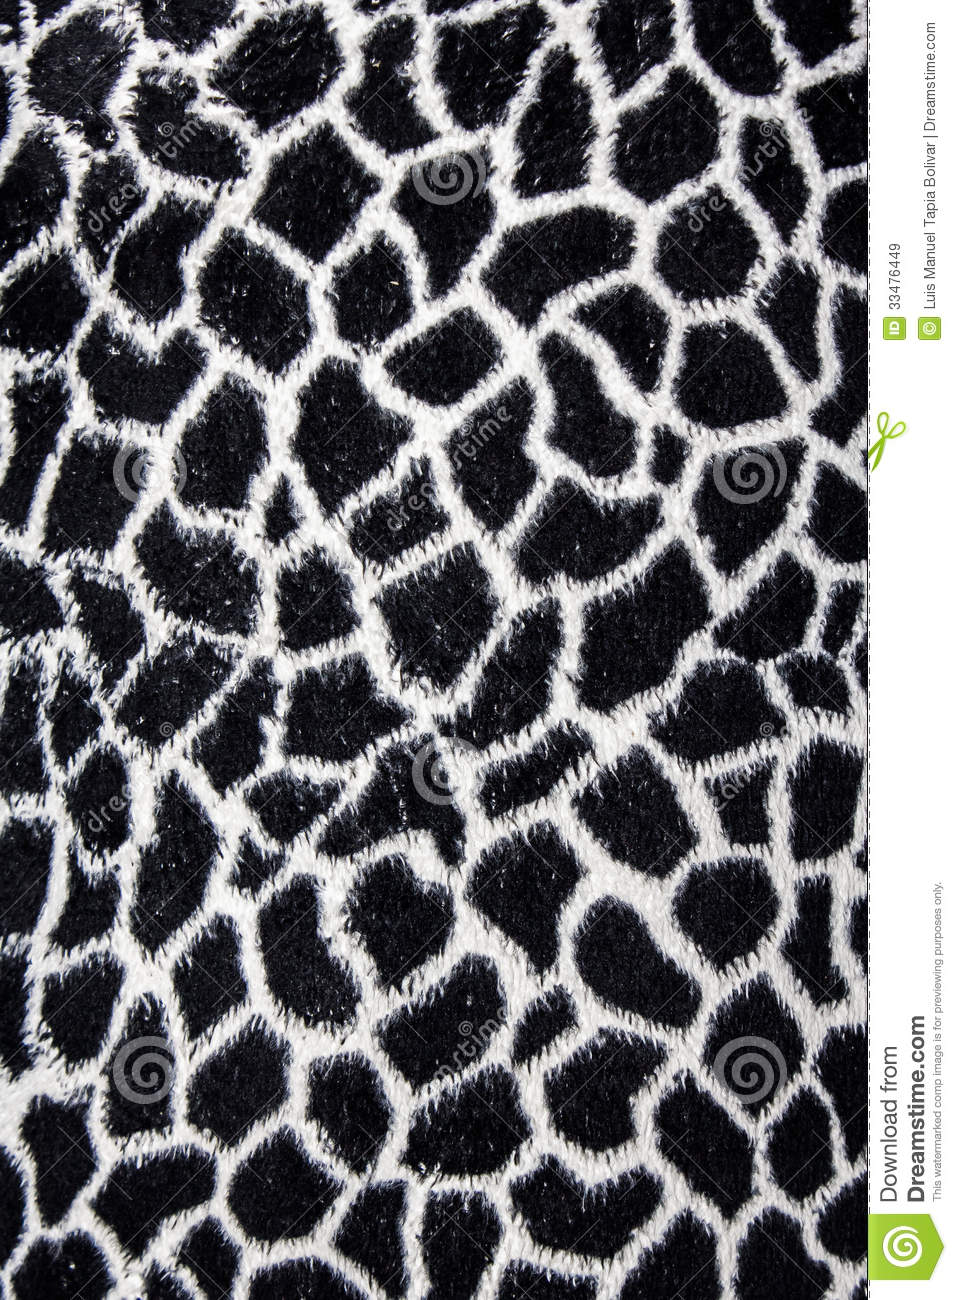 Giraffe Texture Royalty Free Stock Images Image 33476449